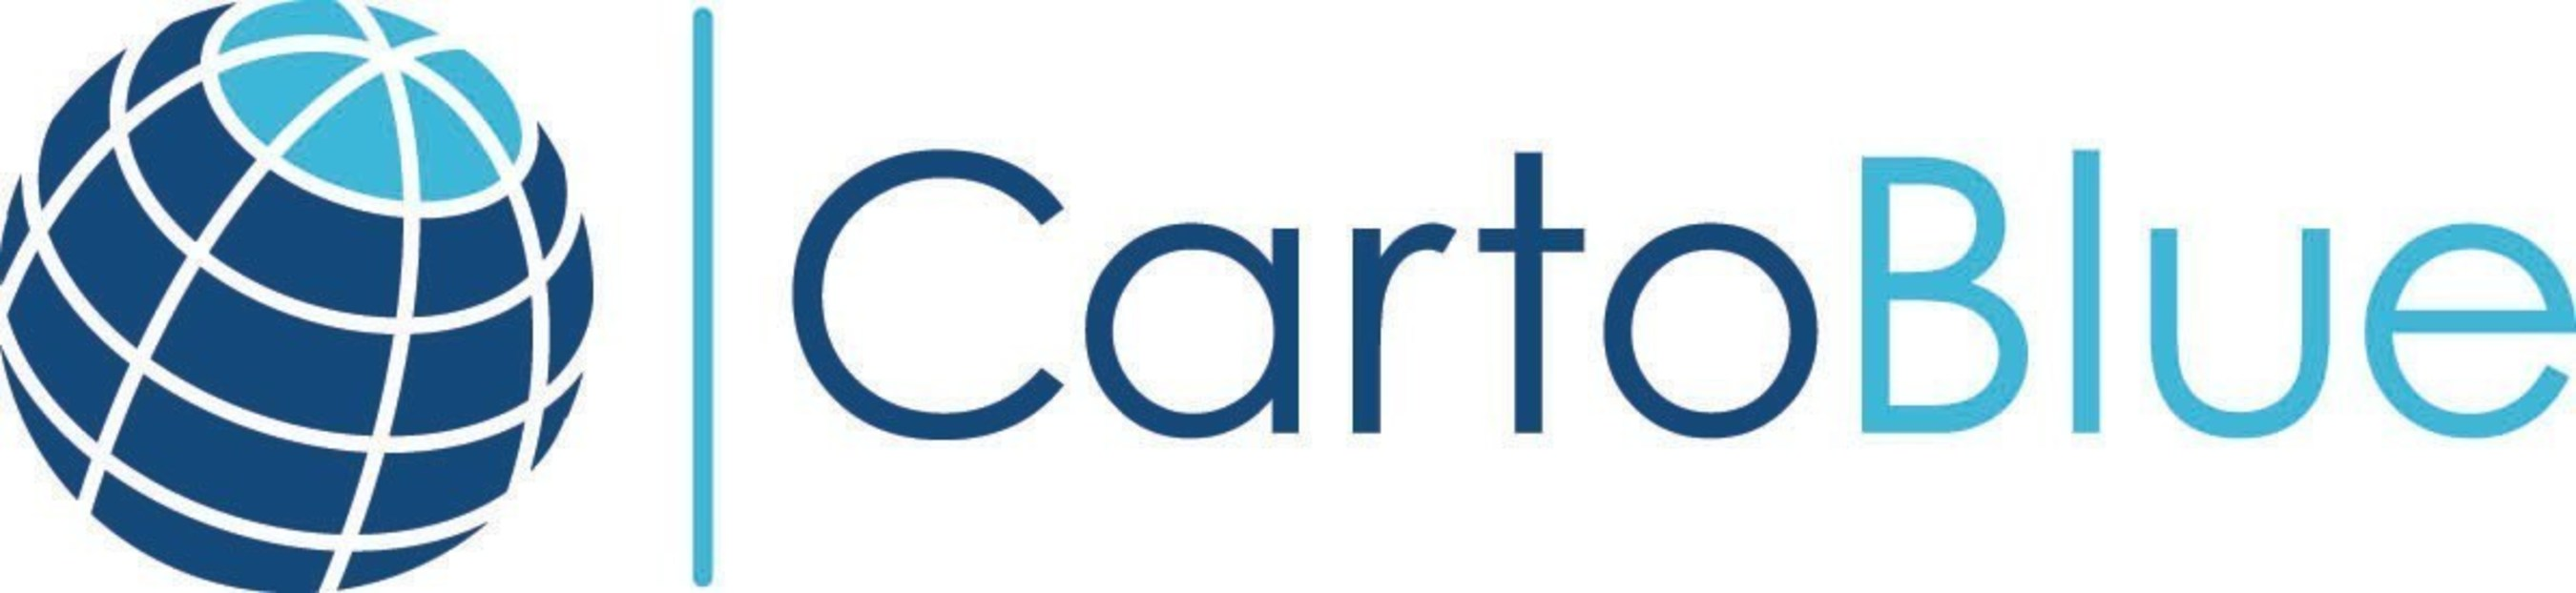 Floor Plan Marketing, LLC rebrands as CartoBlue to reflect world-wide client base and new expansive line of digital marketing tools for real estate, developers, vacation rentals, hotels and resorts.